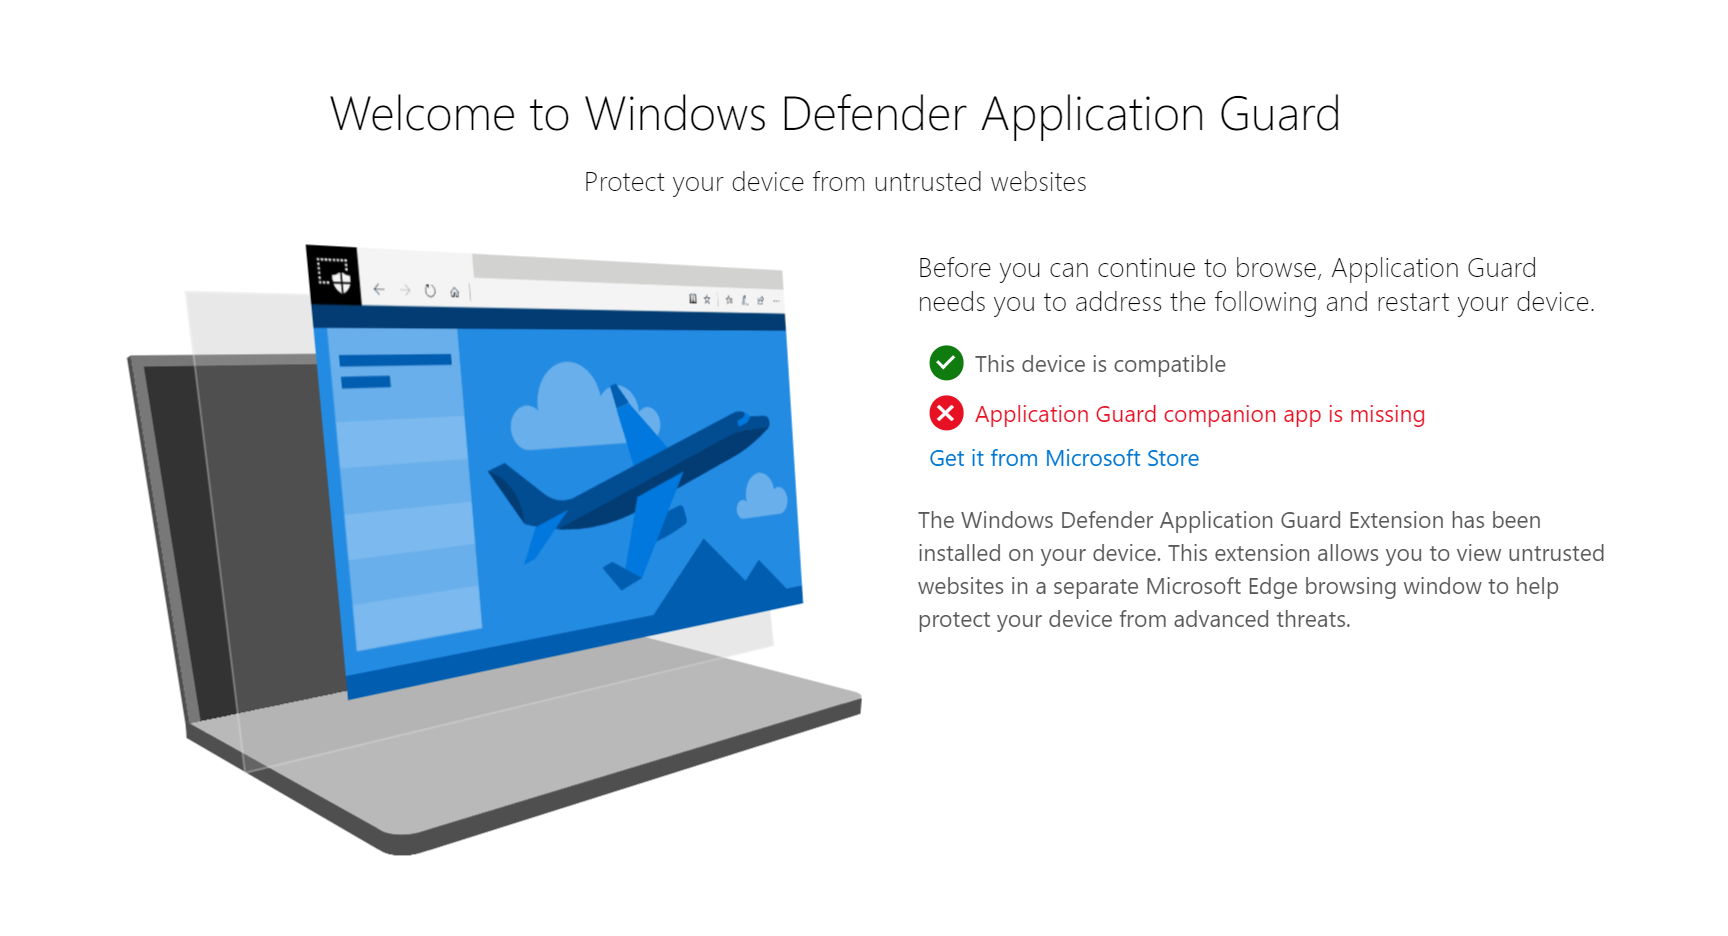 Turn On or Off Save Data in Application Guard for Microsoft Edge windows-defender-application-guard-components-not-complete.png